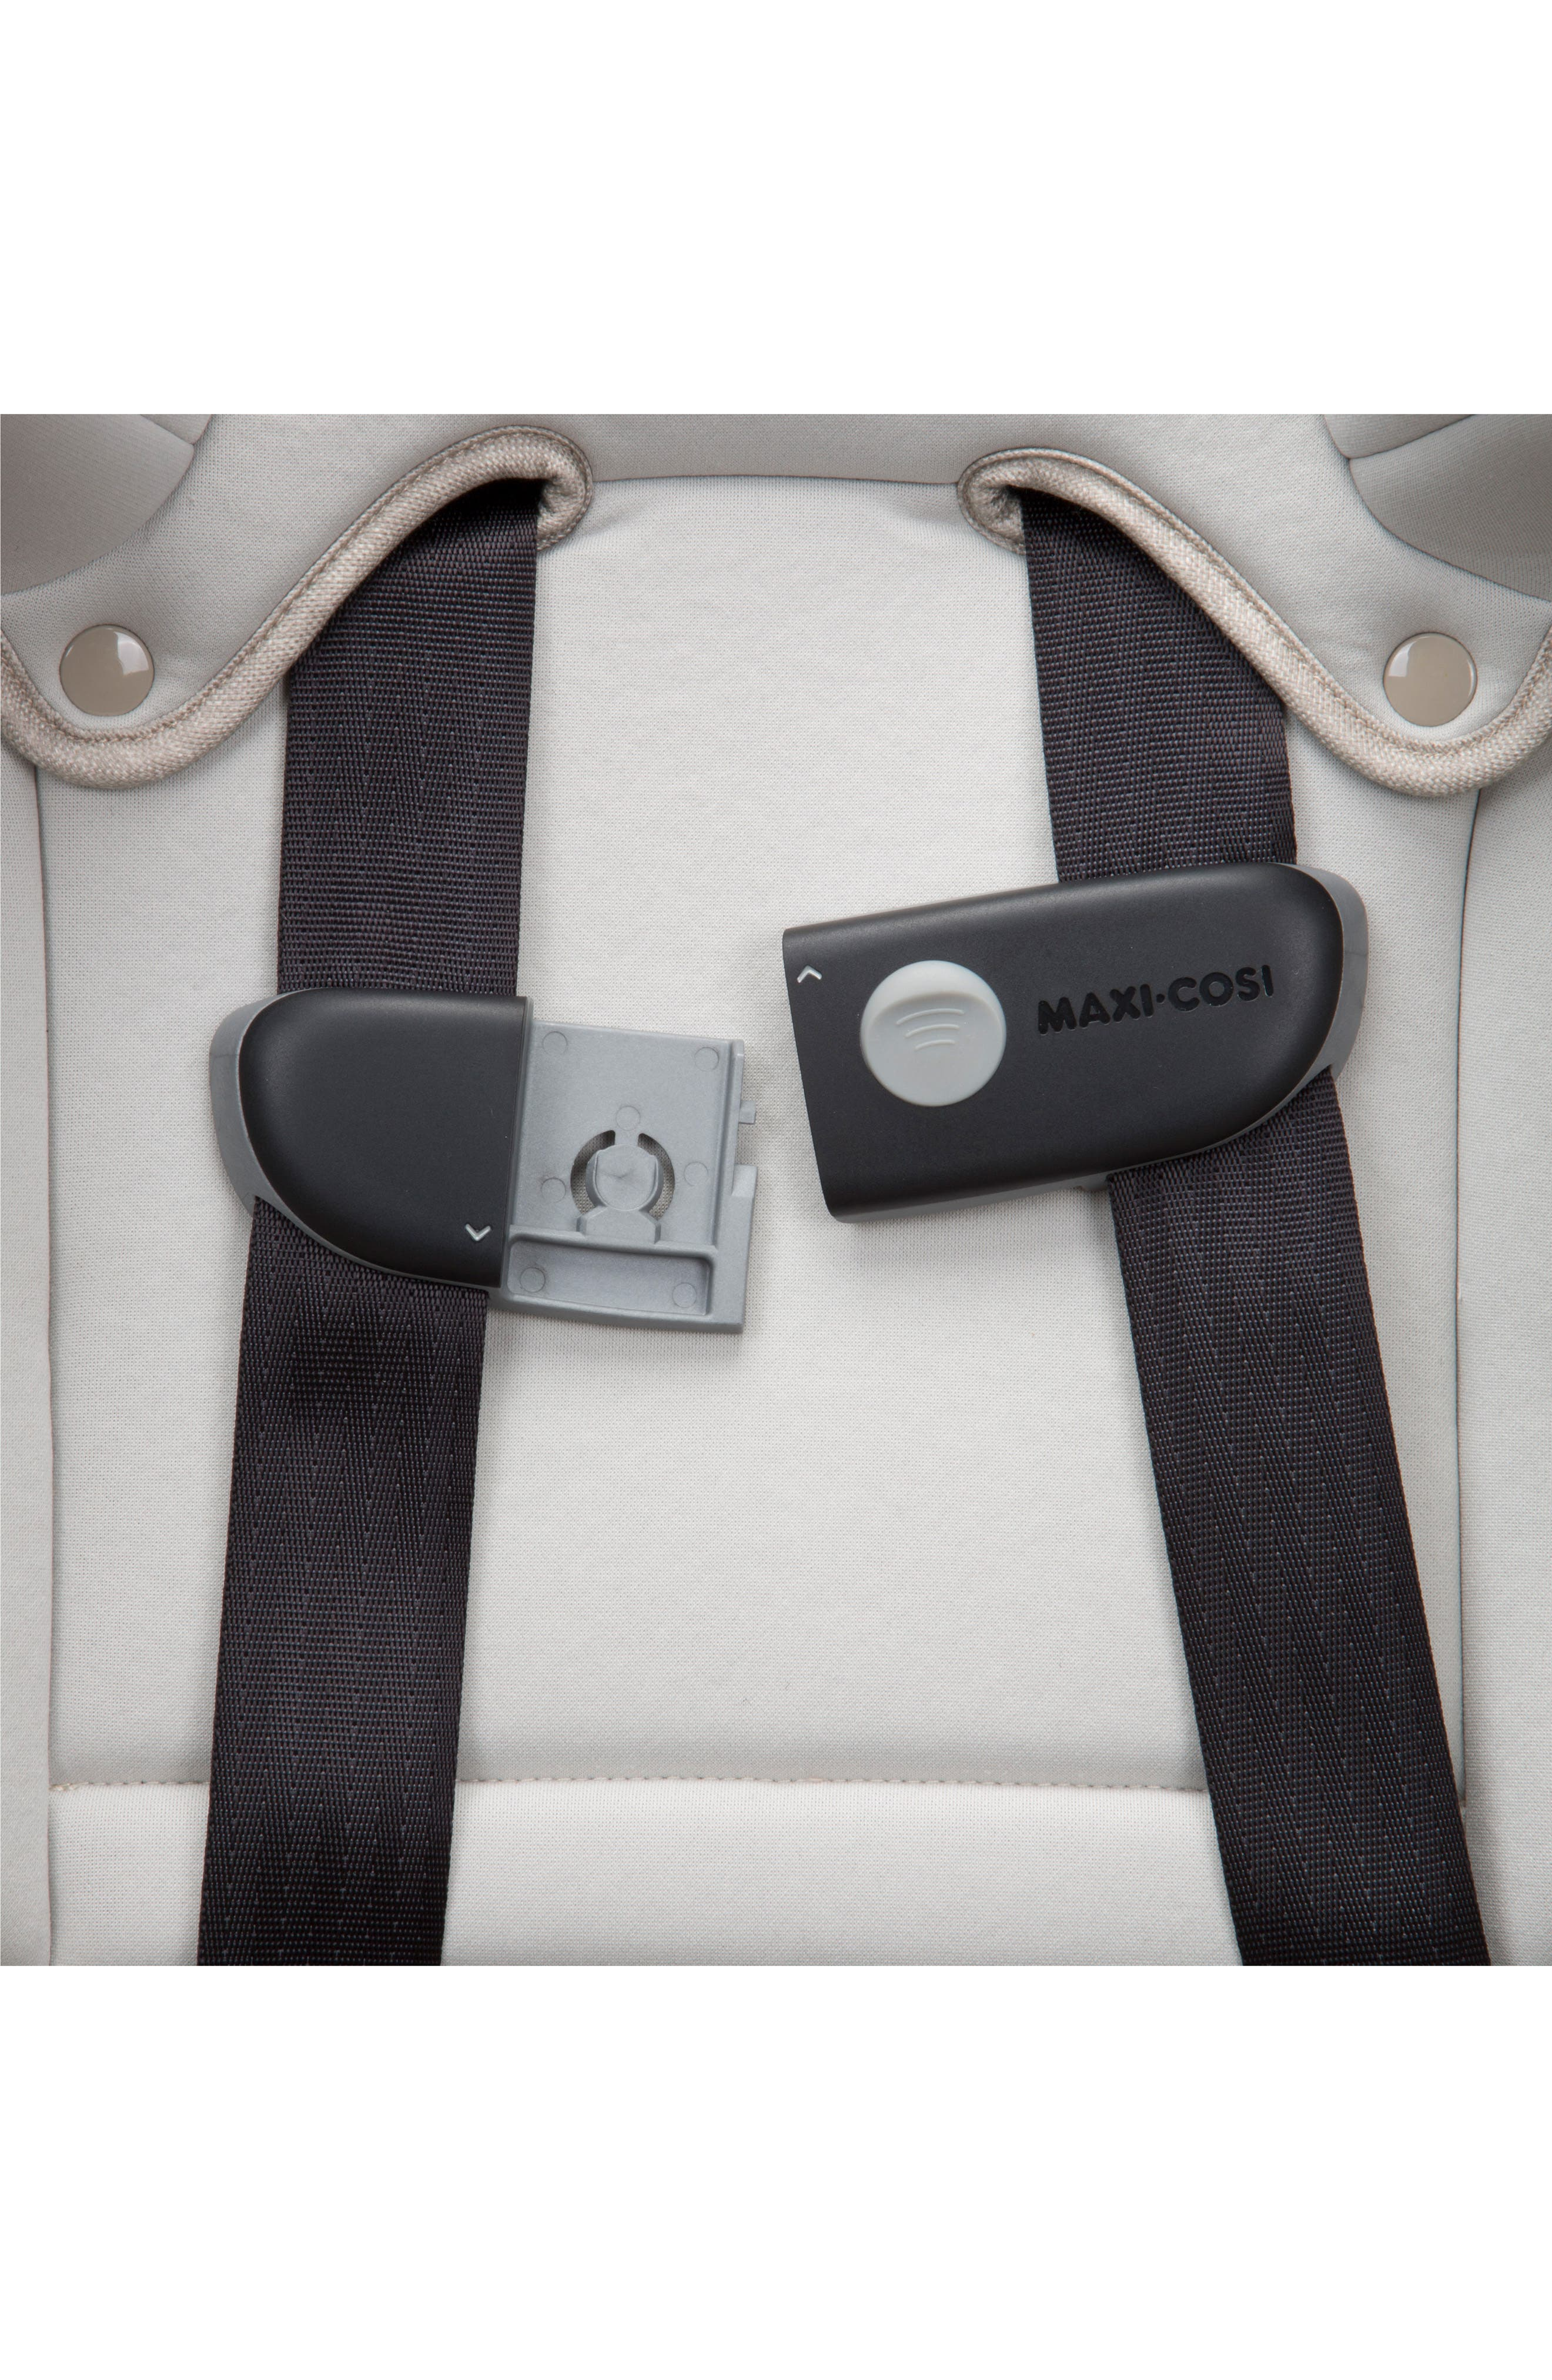 Pria<sup>™</sup> 85 Max Nomad Collection Convertible Car Seat,                             Alternate thumbnail 10, color,                             Nomad Sand